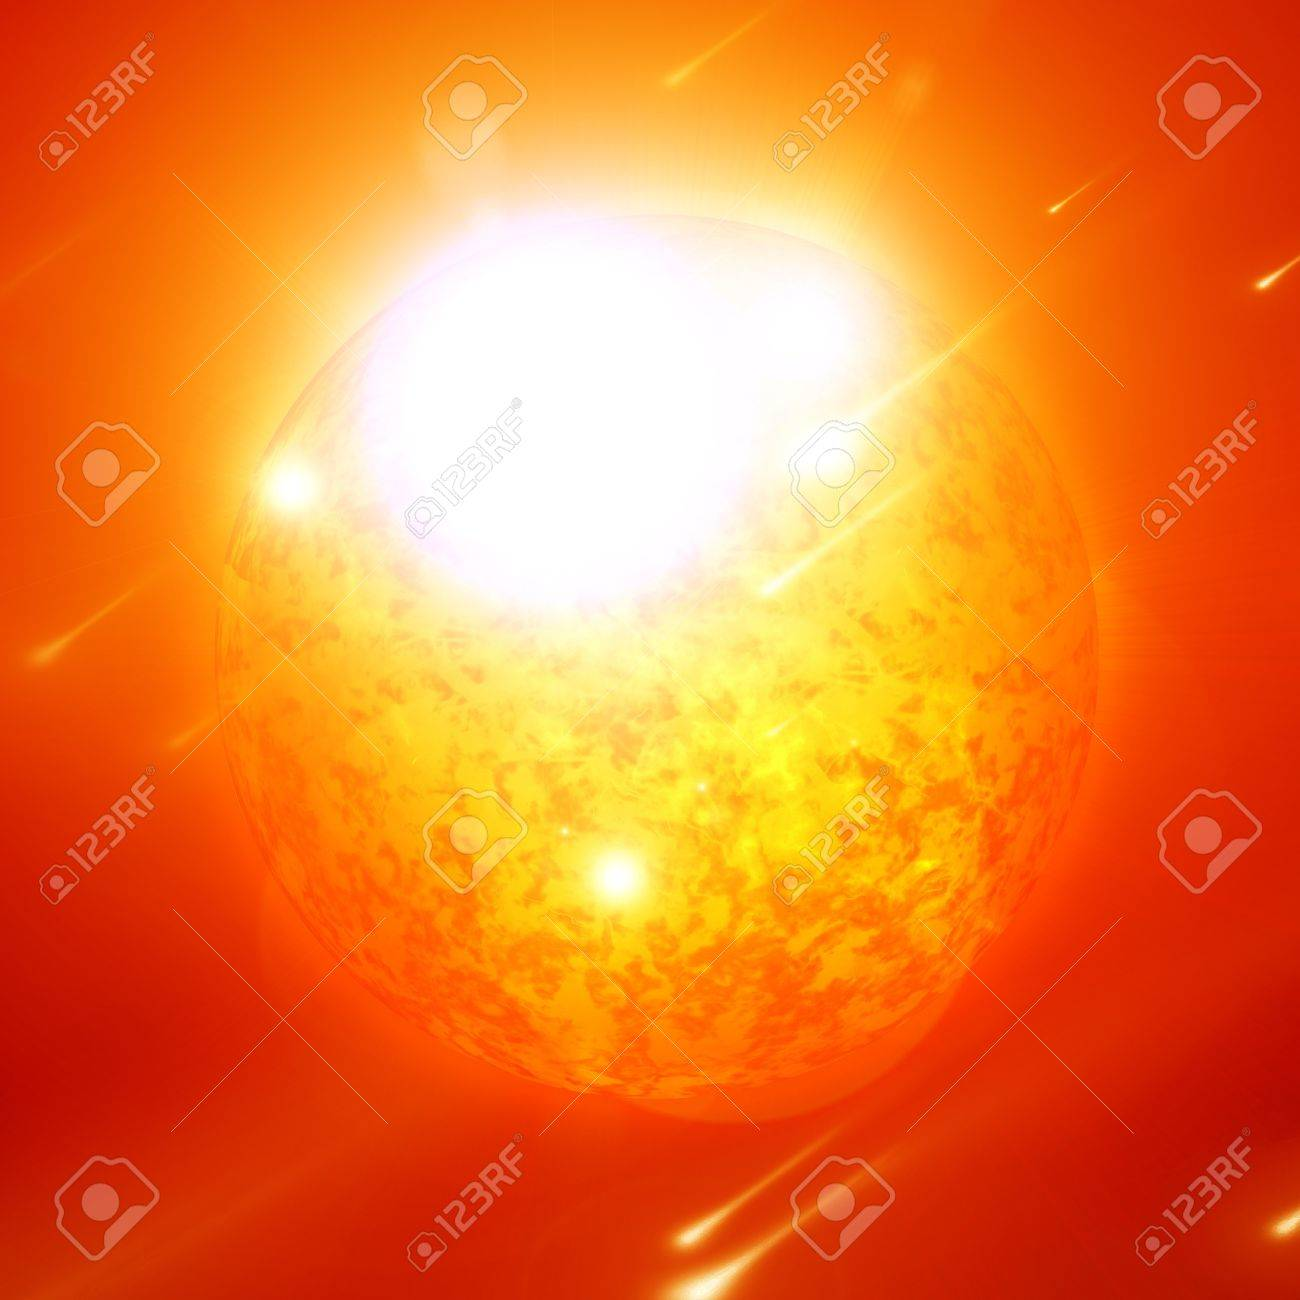 Sun in outer space with intense solar activity